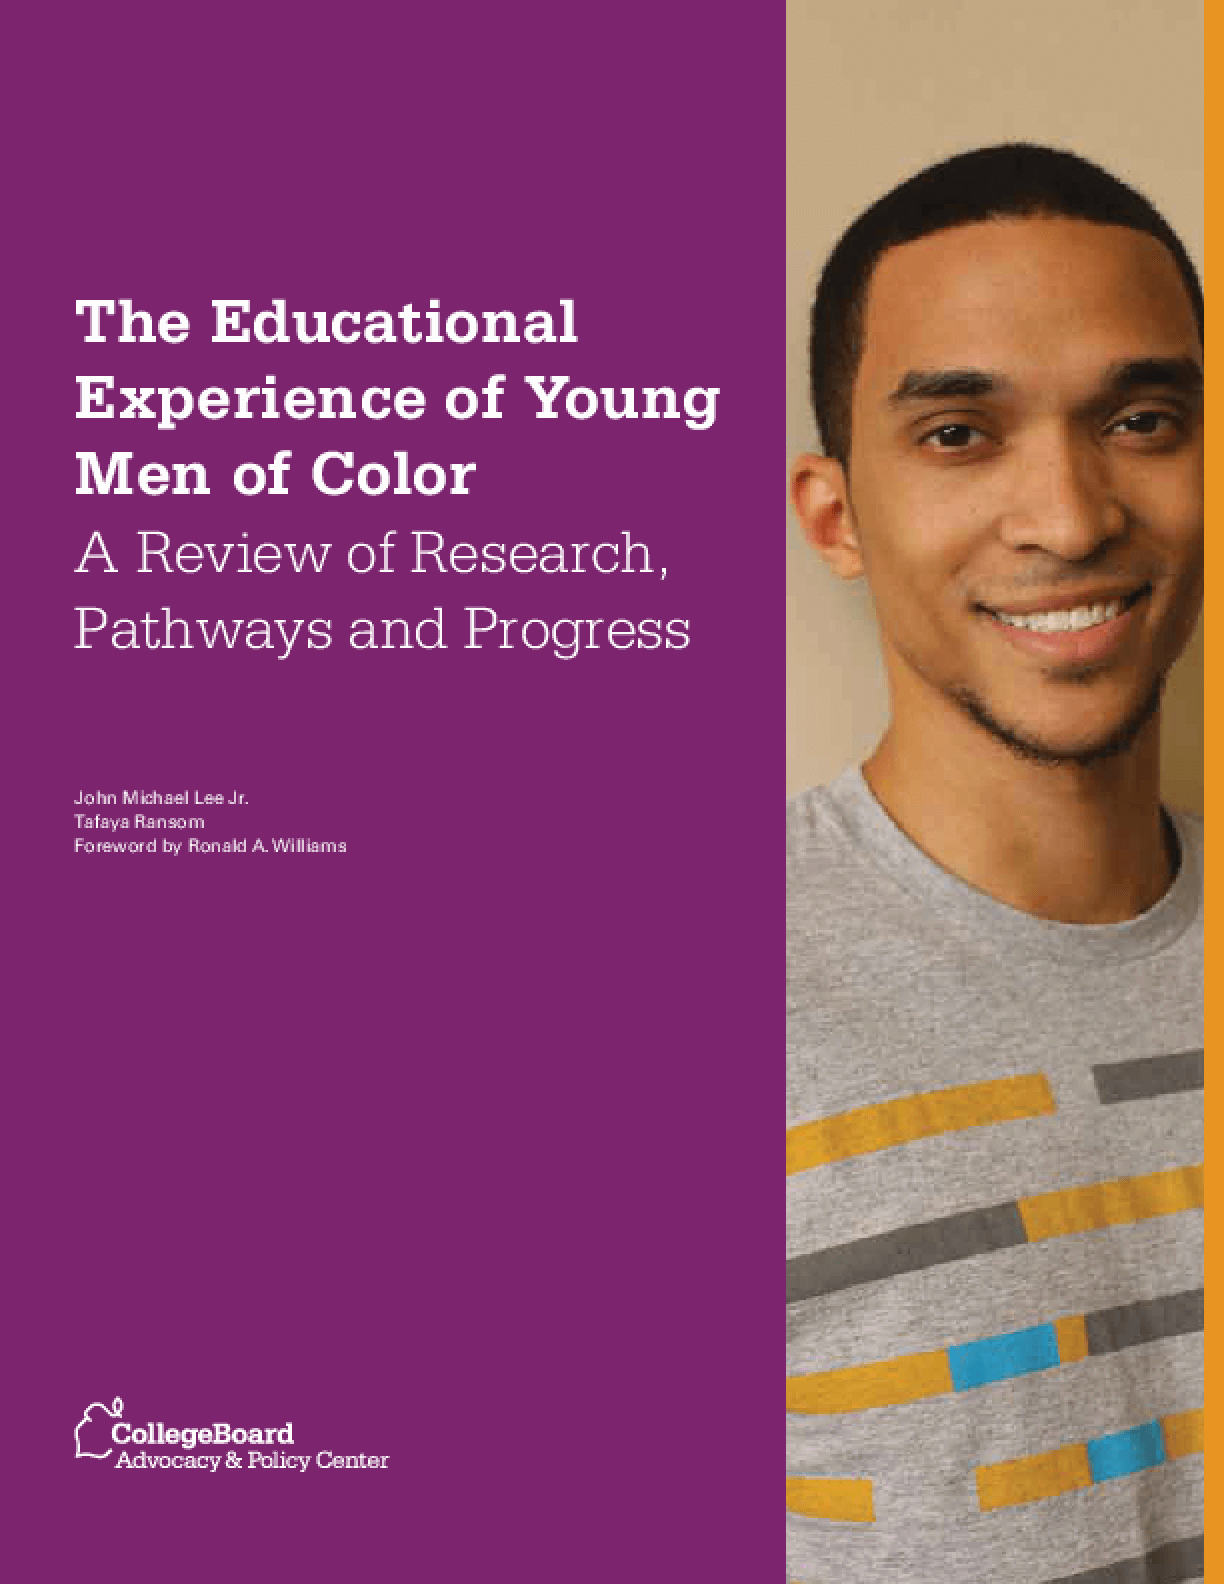 The Educational Experience of Young Men of Color: A Review of Research, Pathways and Progress